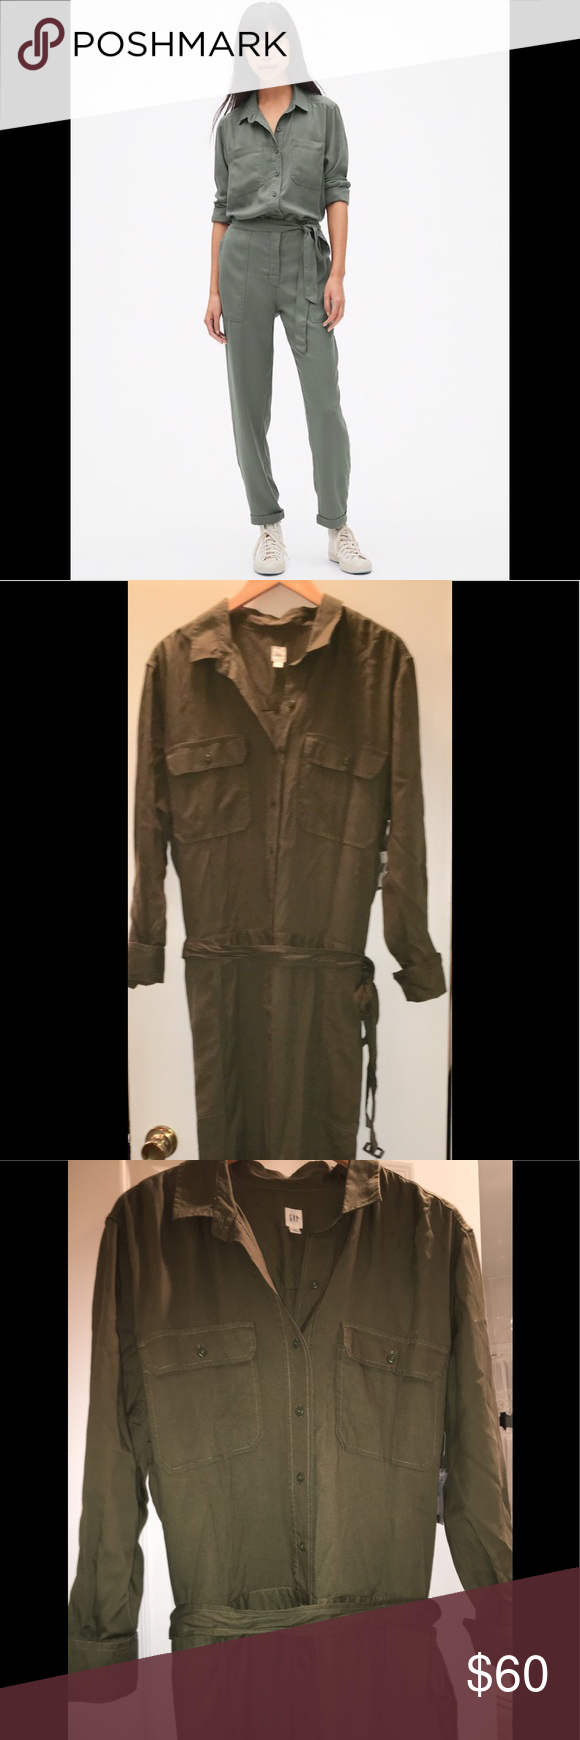 5cca5d2f8d0 GAP- JUMPSUIT  ROMPER- OLIVE   ARMY GREEN ♧️NWT NWT- Olive   Army green  jumpsuit   Romper brand new with tags ! •XXL •collar button down front •two  top ...